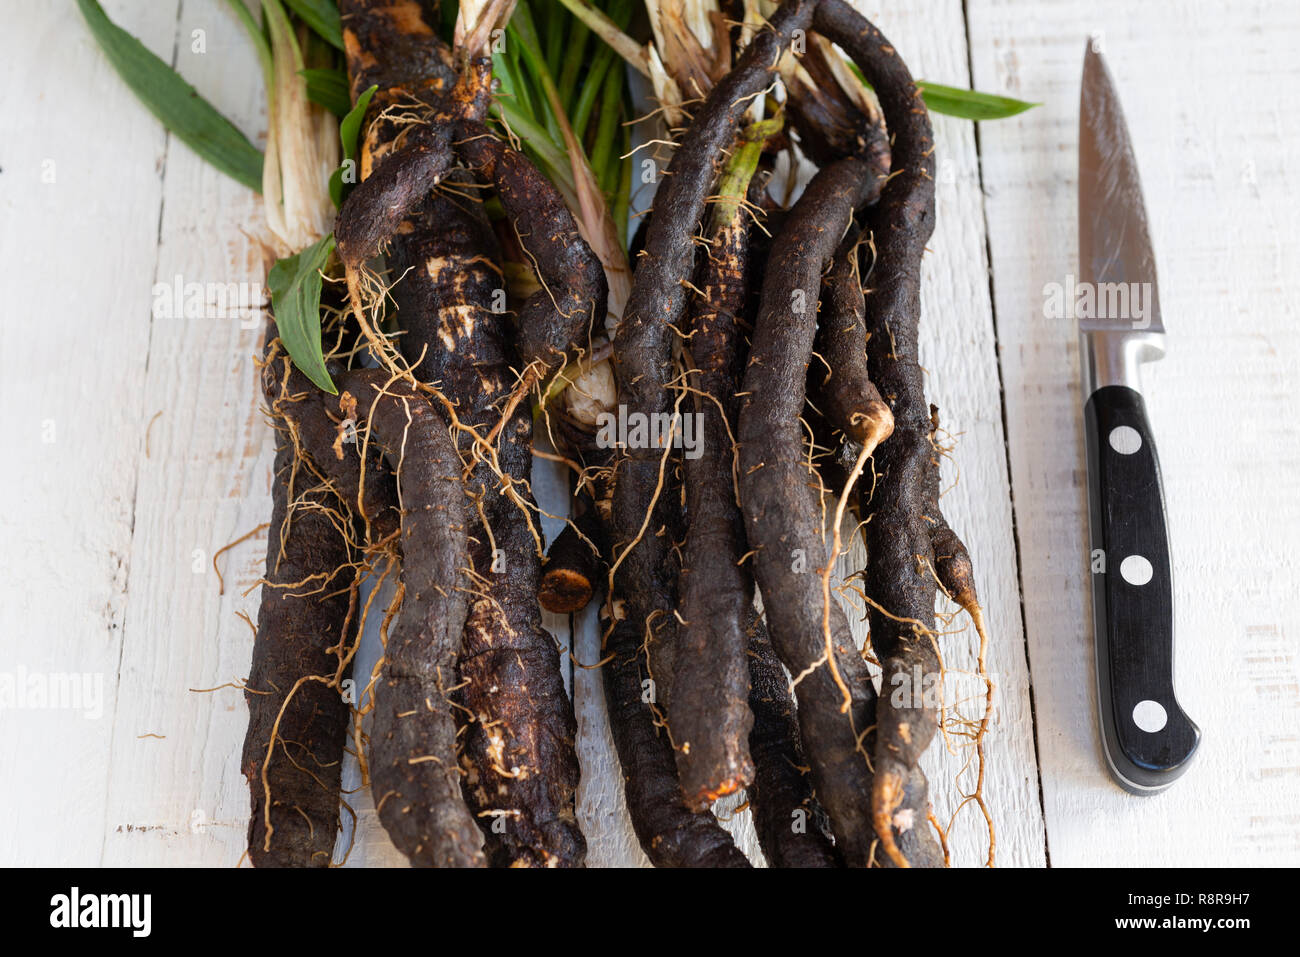 Fresh Scorzonera  (black salsify) ready for meal preparation in the kitchen. Stock Photo